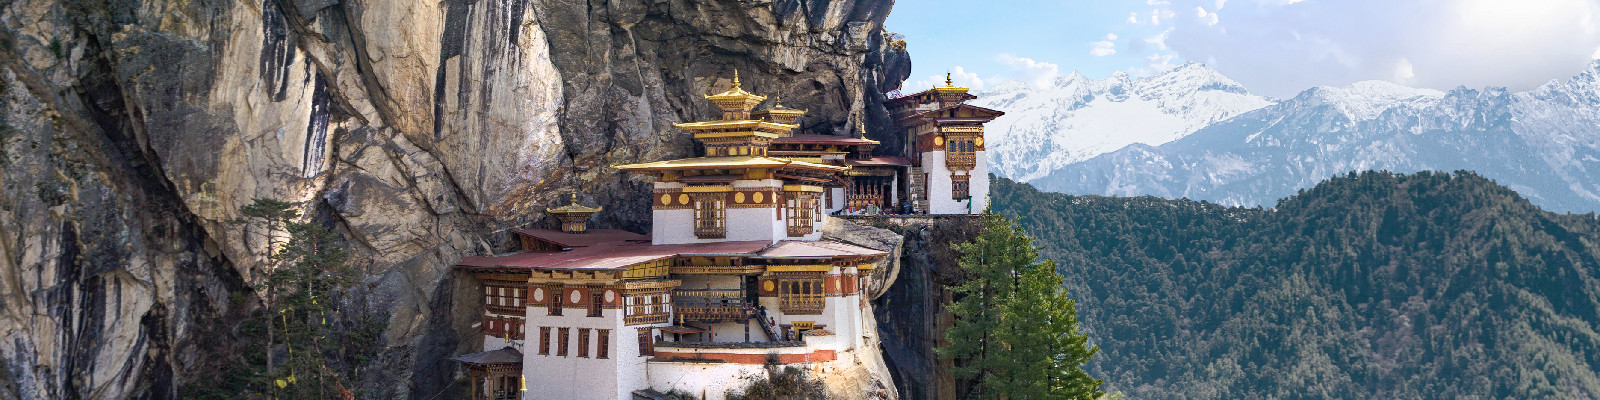 Bhutan tours (photo by Göran Höglund)